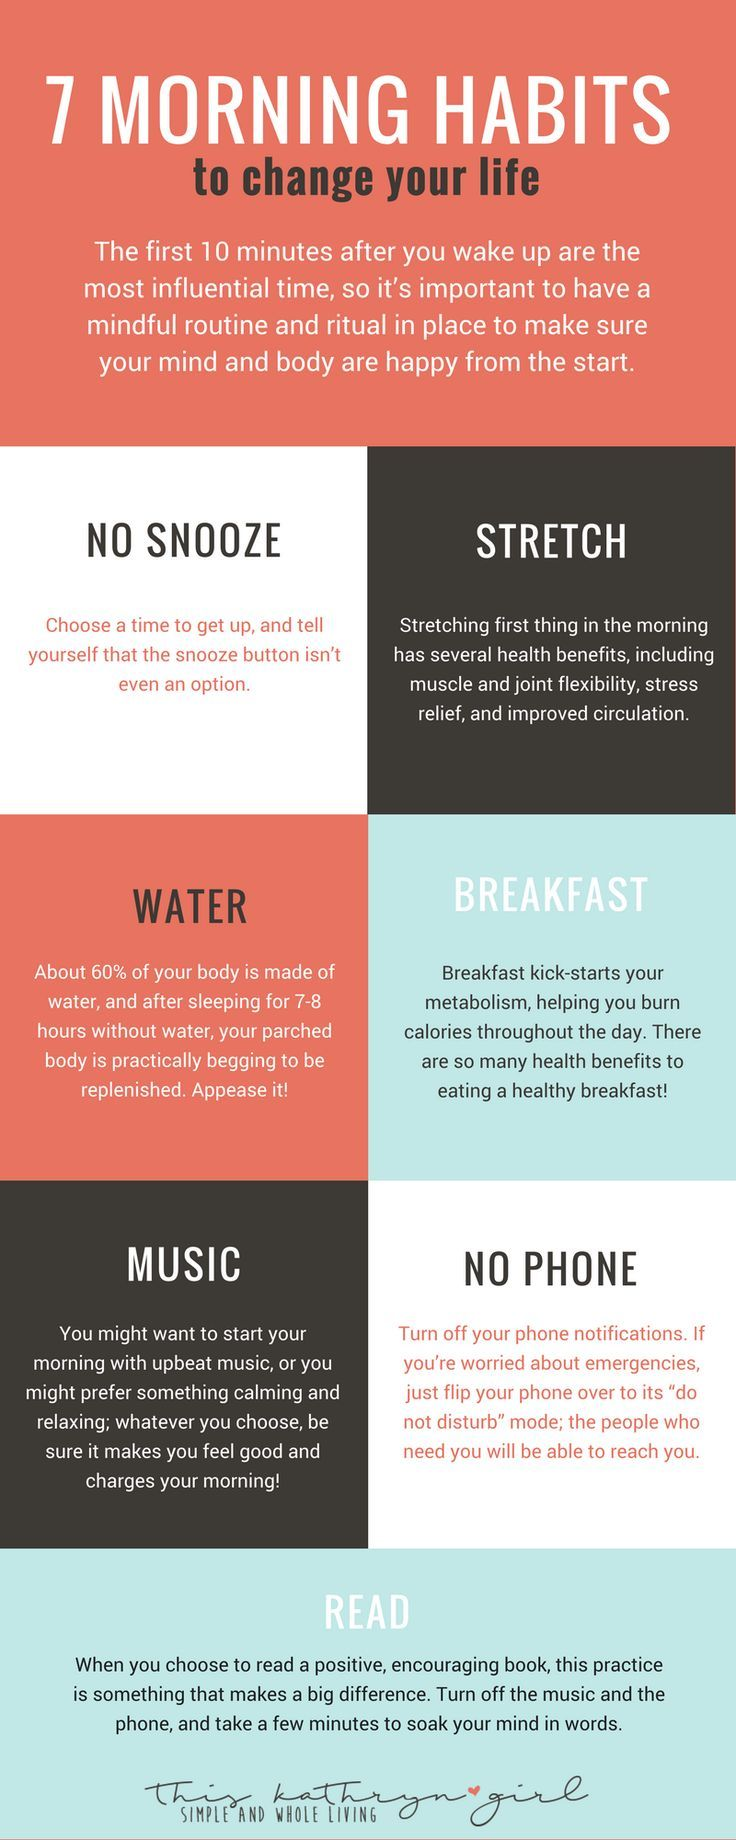 7 Morning Habits to Change Your Life: Your morning sets the tone for the rest of the day. Optimize that precious part of the day by creating a morning routine! This graphic includes 7 ideas to get you started.